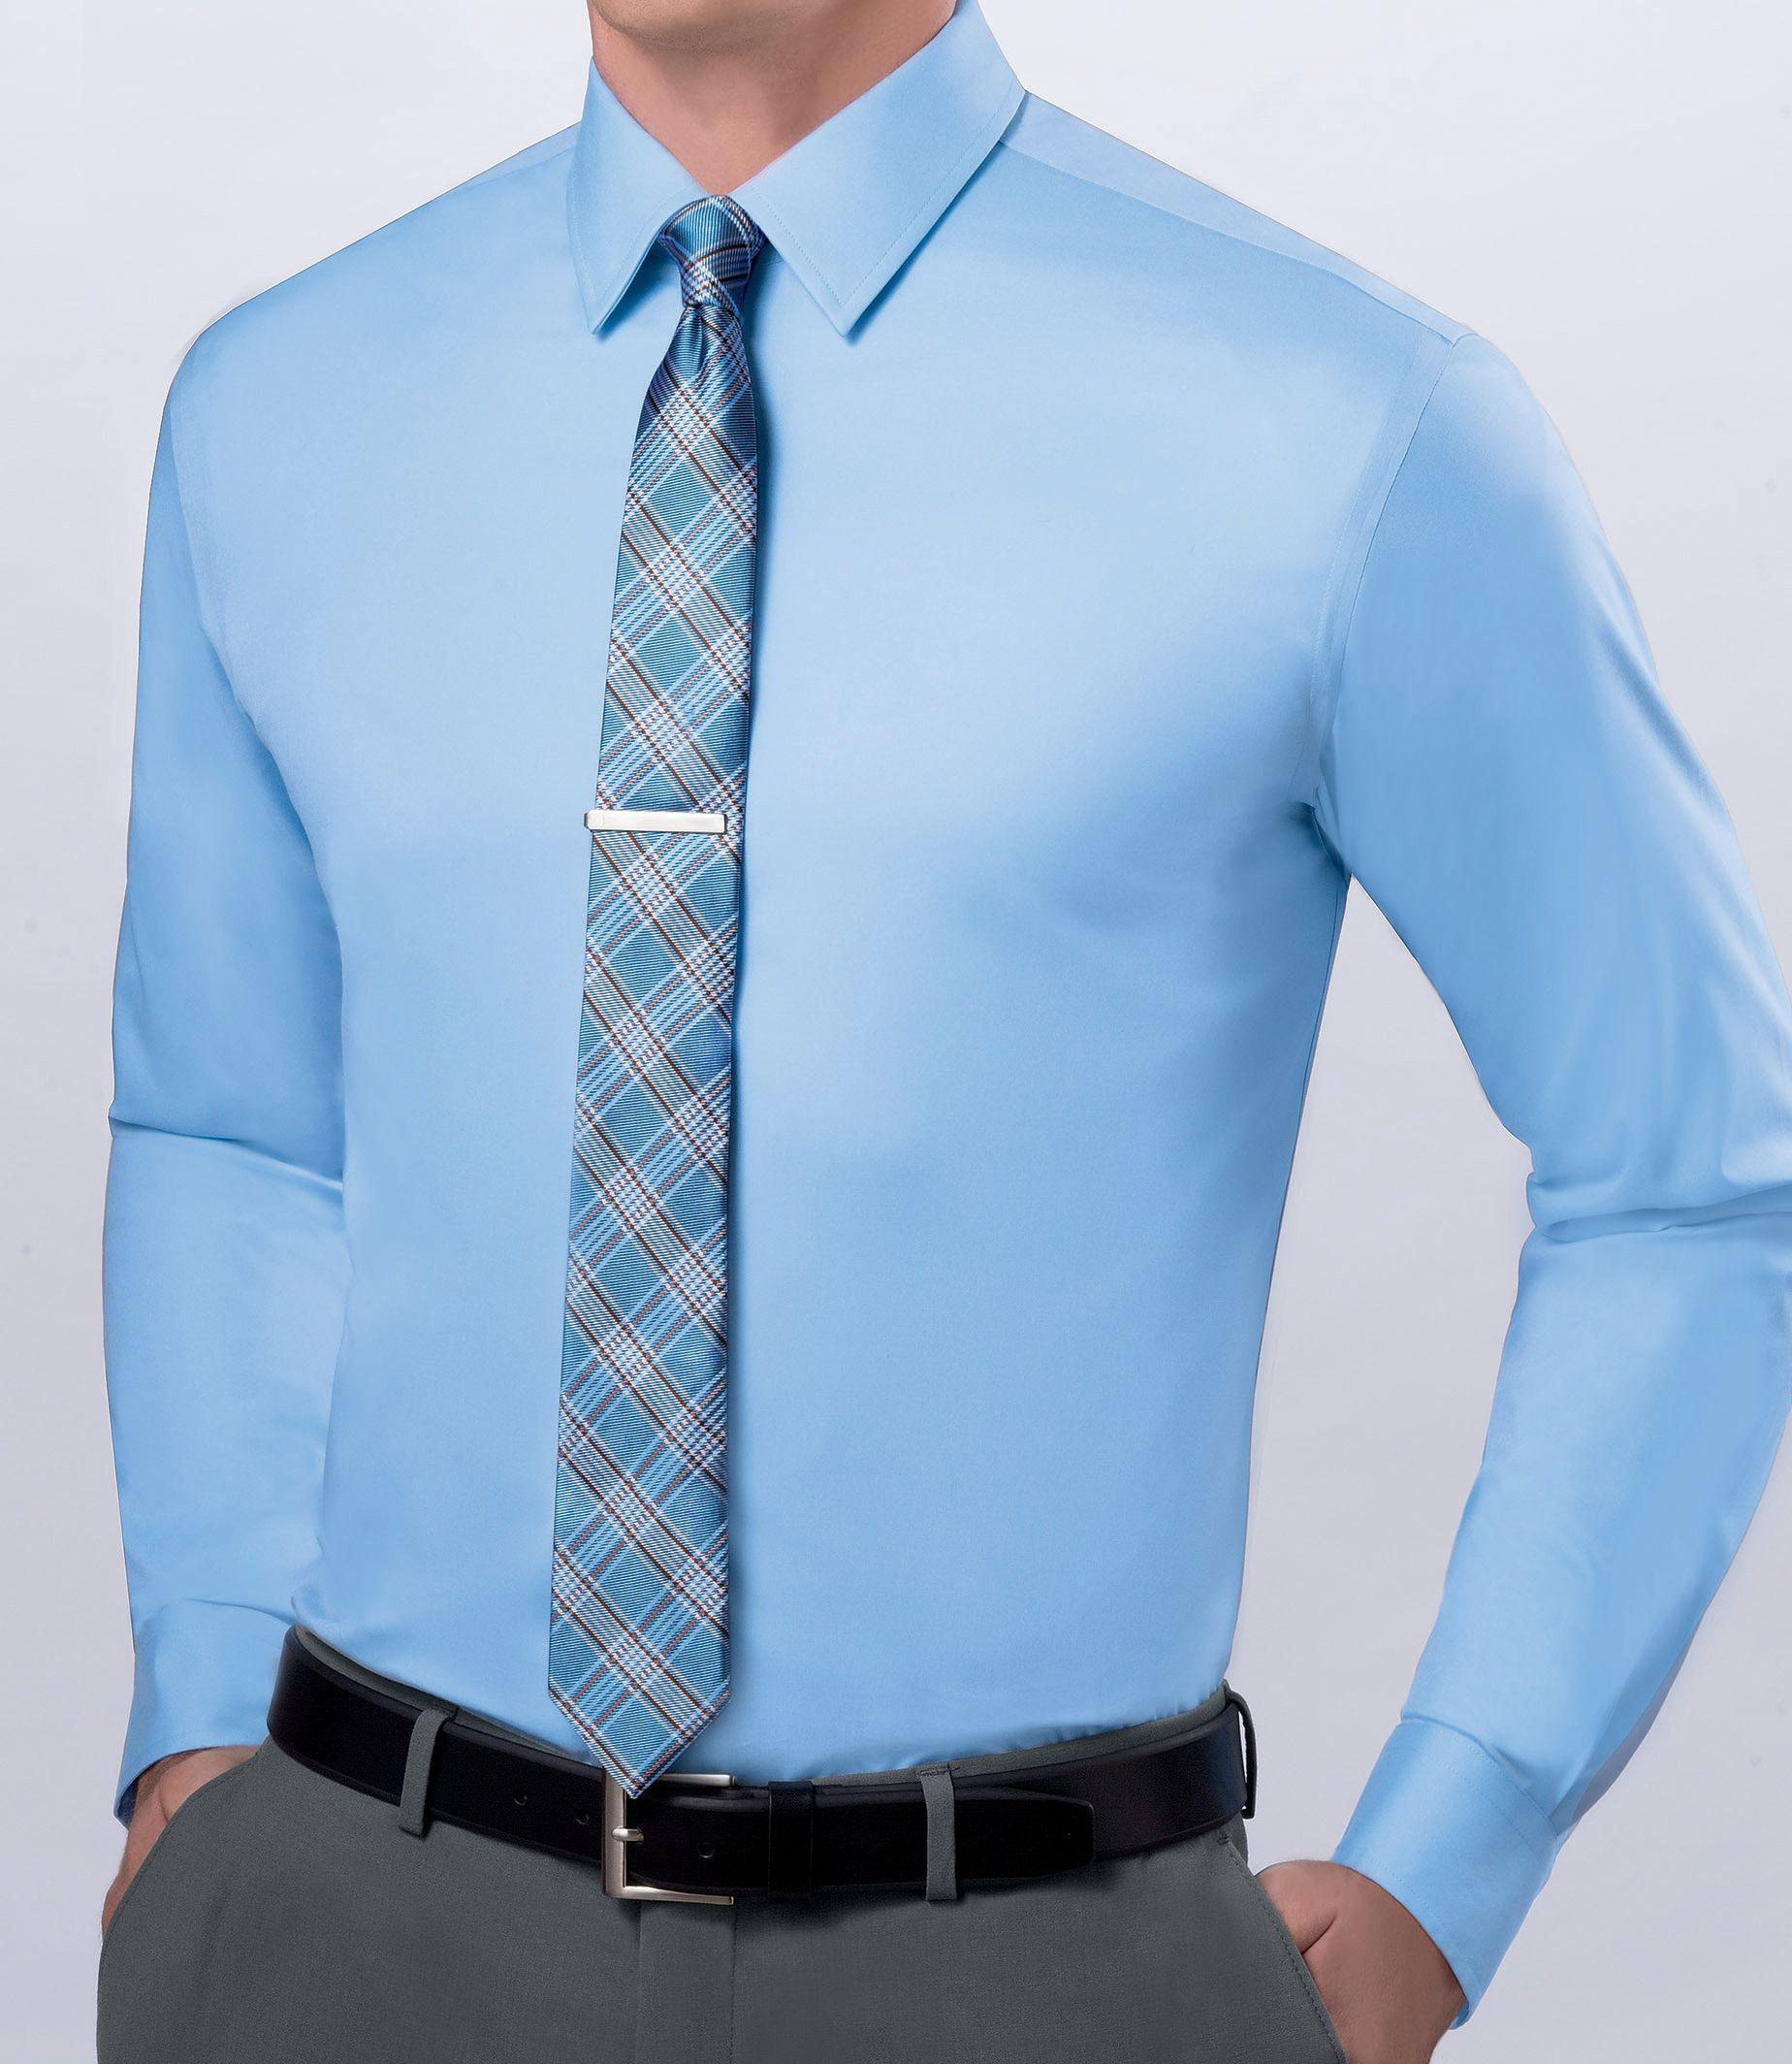 Find great deals on Mens Big & Tall Dress Shirts Tops at Kohl's today! Sponsored Links Big & Tall Croft & Barrow® Classic-Fit Dress Shirt and Patterned Tie Boxed Set. Regular. $ Big & Tall Van Heusen Flex Collar Regular Tall Pincord Dress Shirt. Regular. $